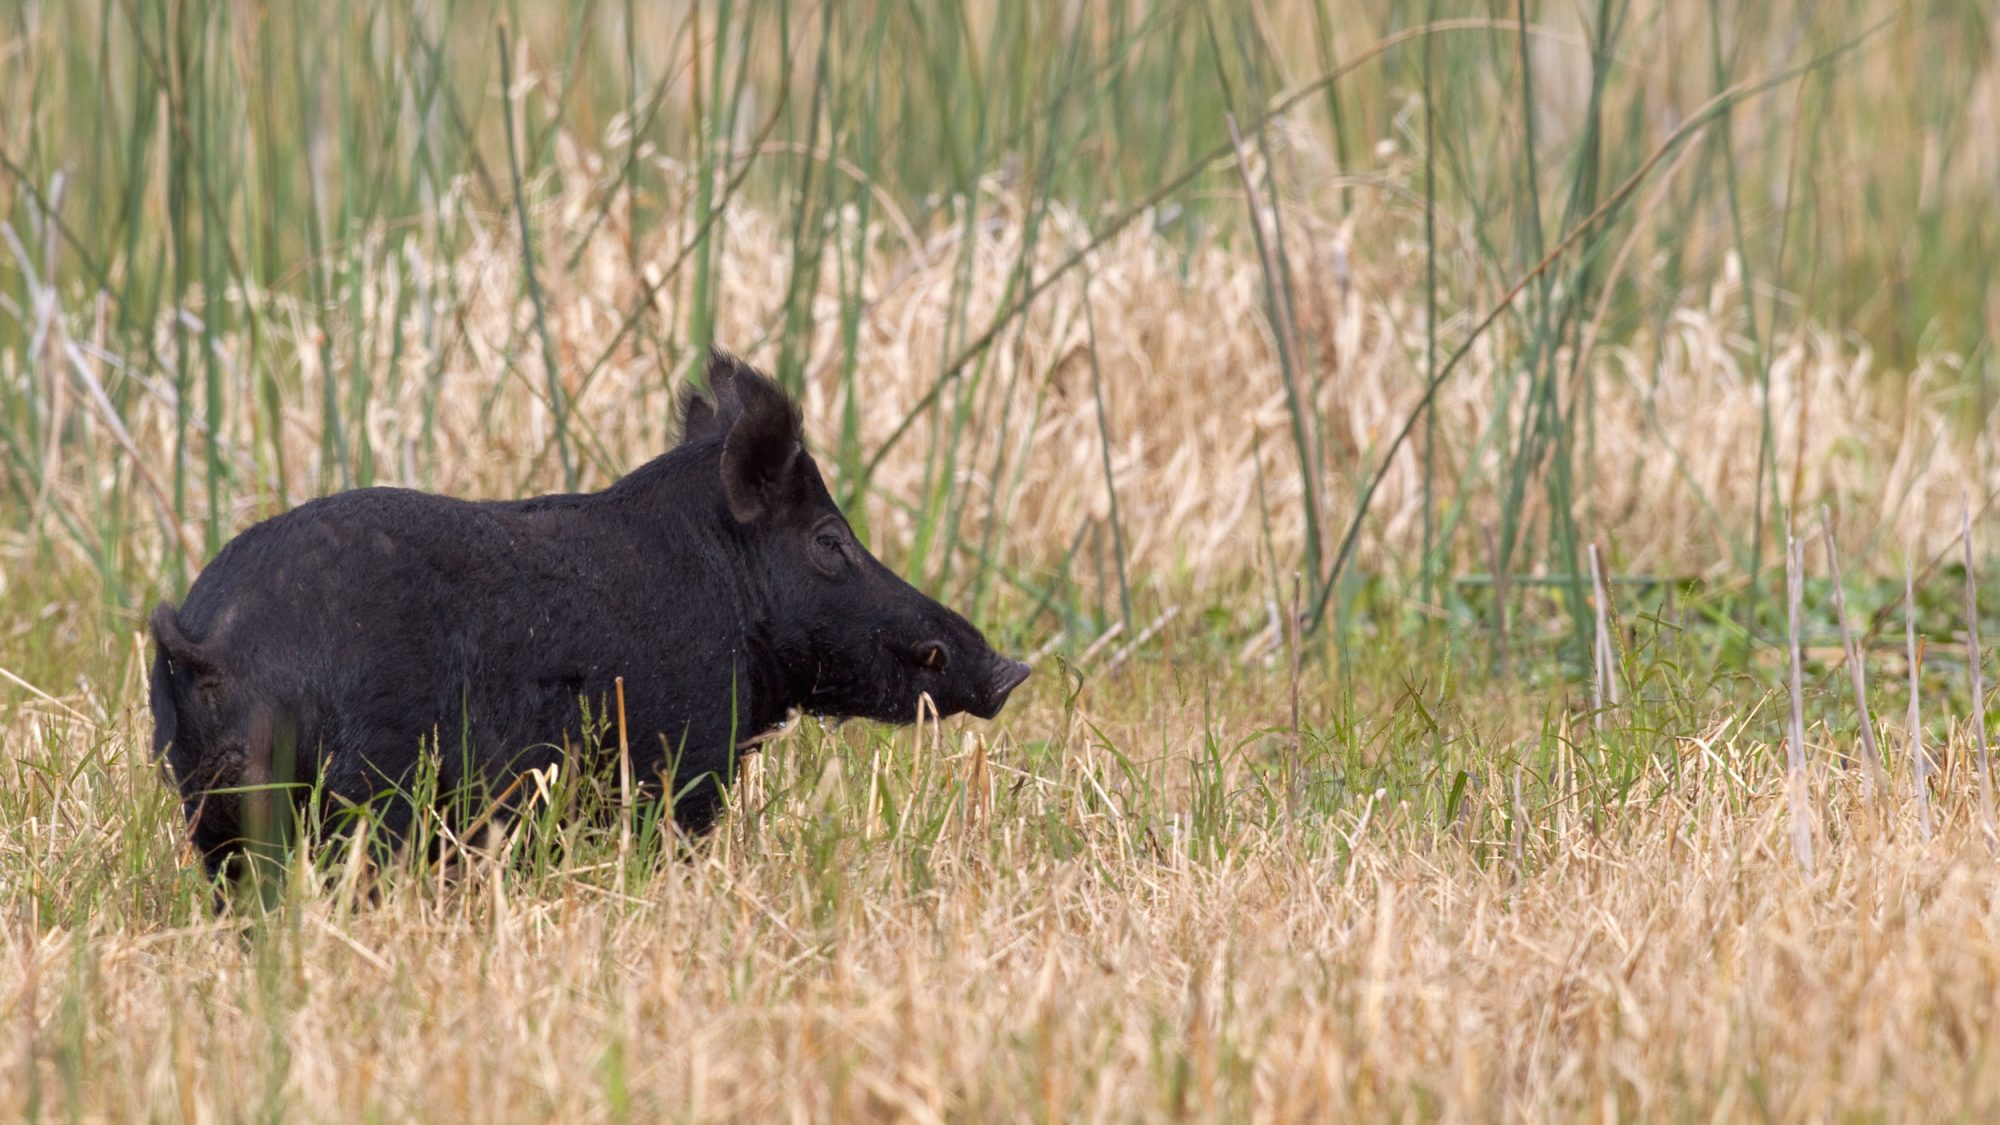 Wild Pigs in Florida